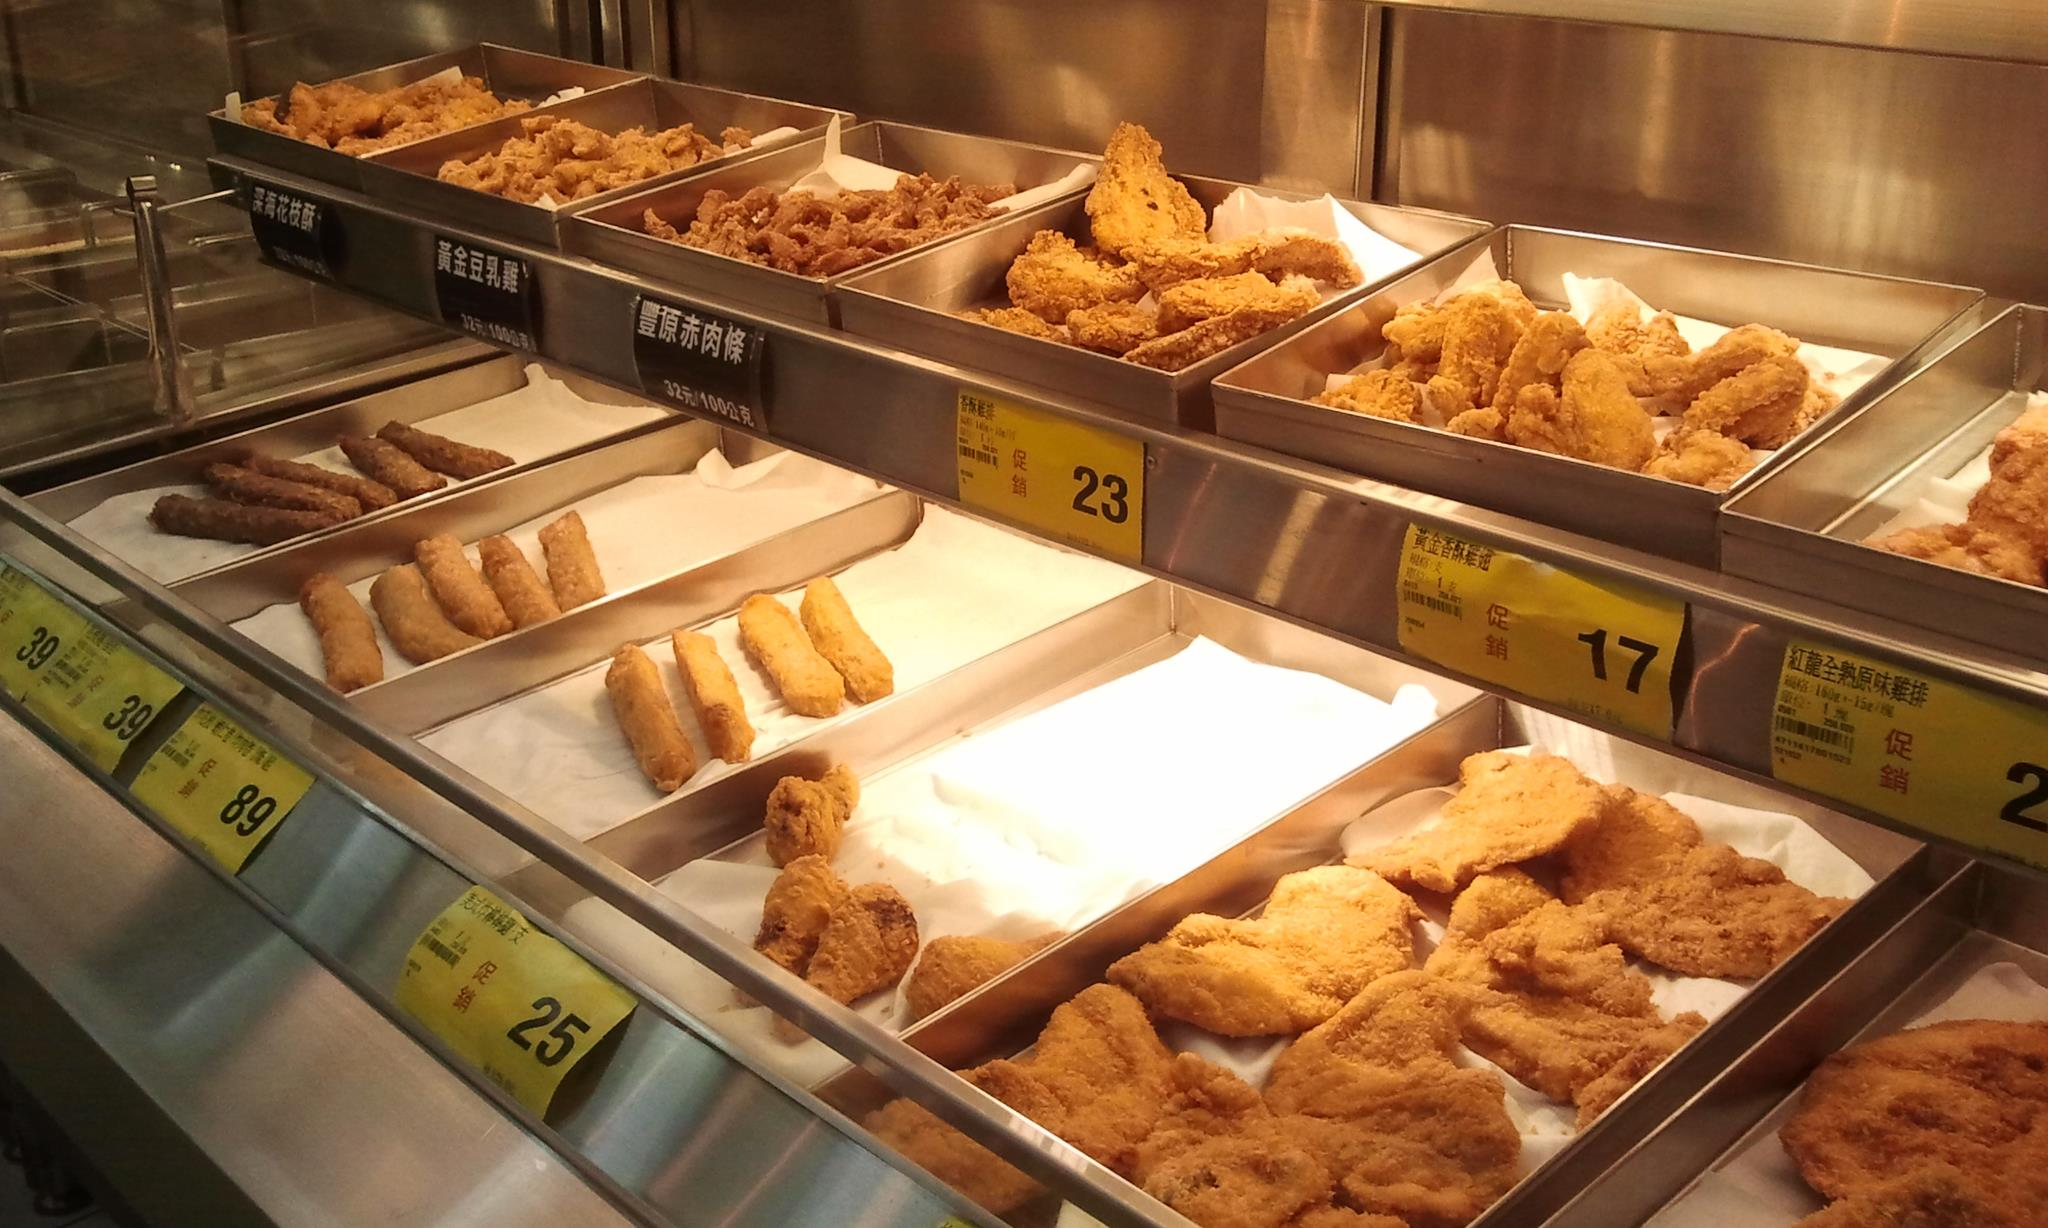 Chinese food in a Taiwanese supermarket